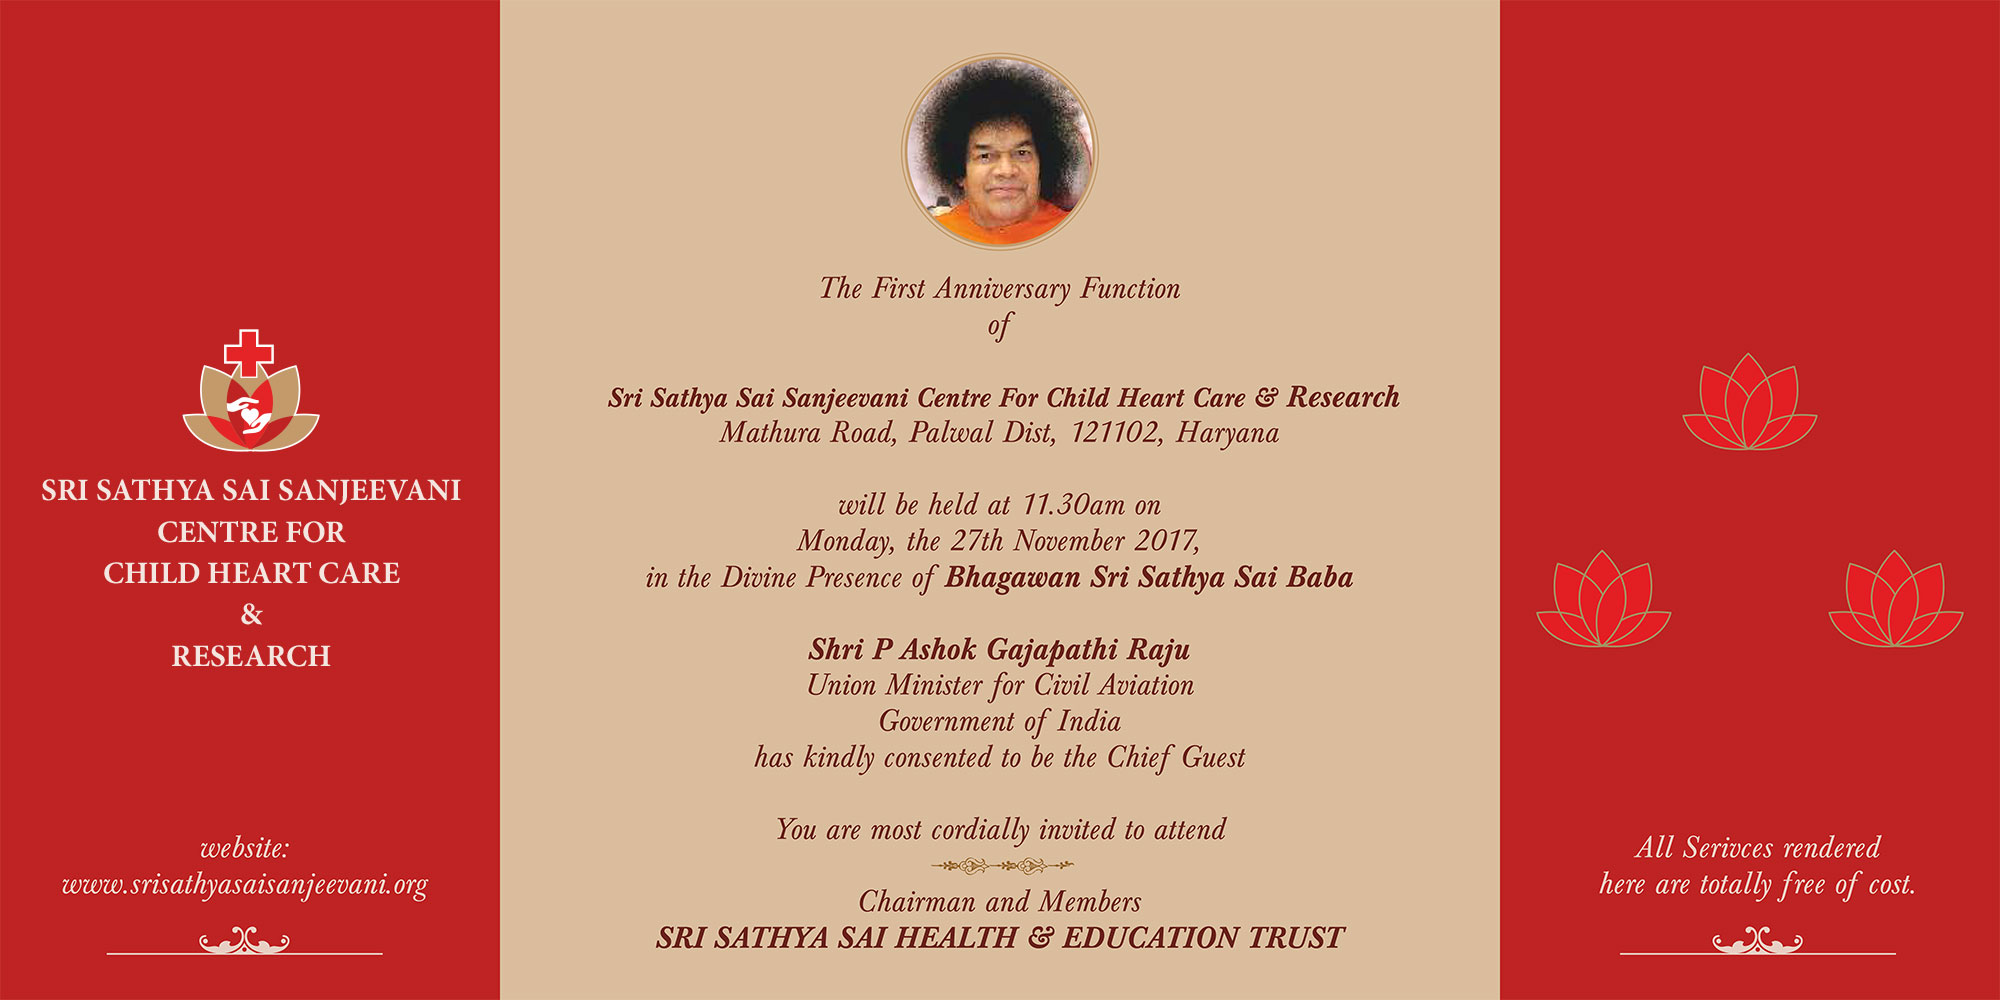 First anniversary celebration of sri sathya sai sanjeevani first anniversary celebration of sri sathya sai sanjeevani international centre for child heart care and research stopboris Image collections